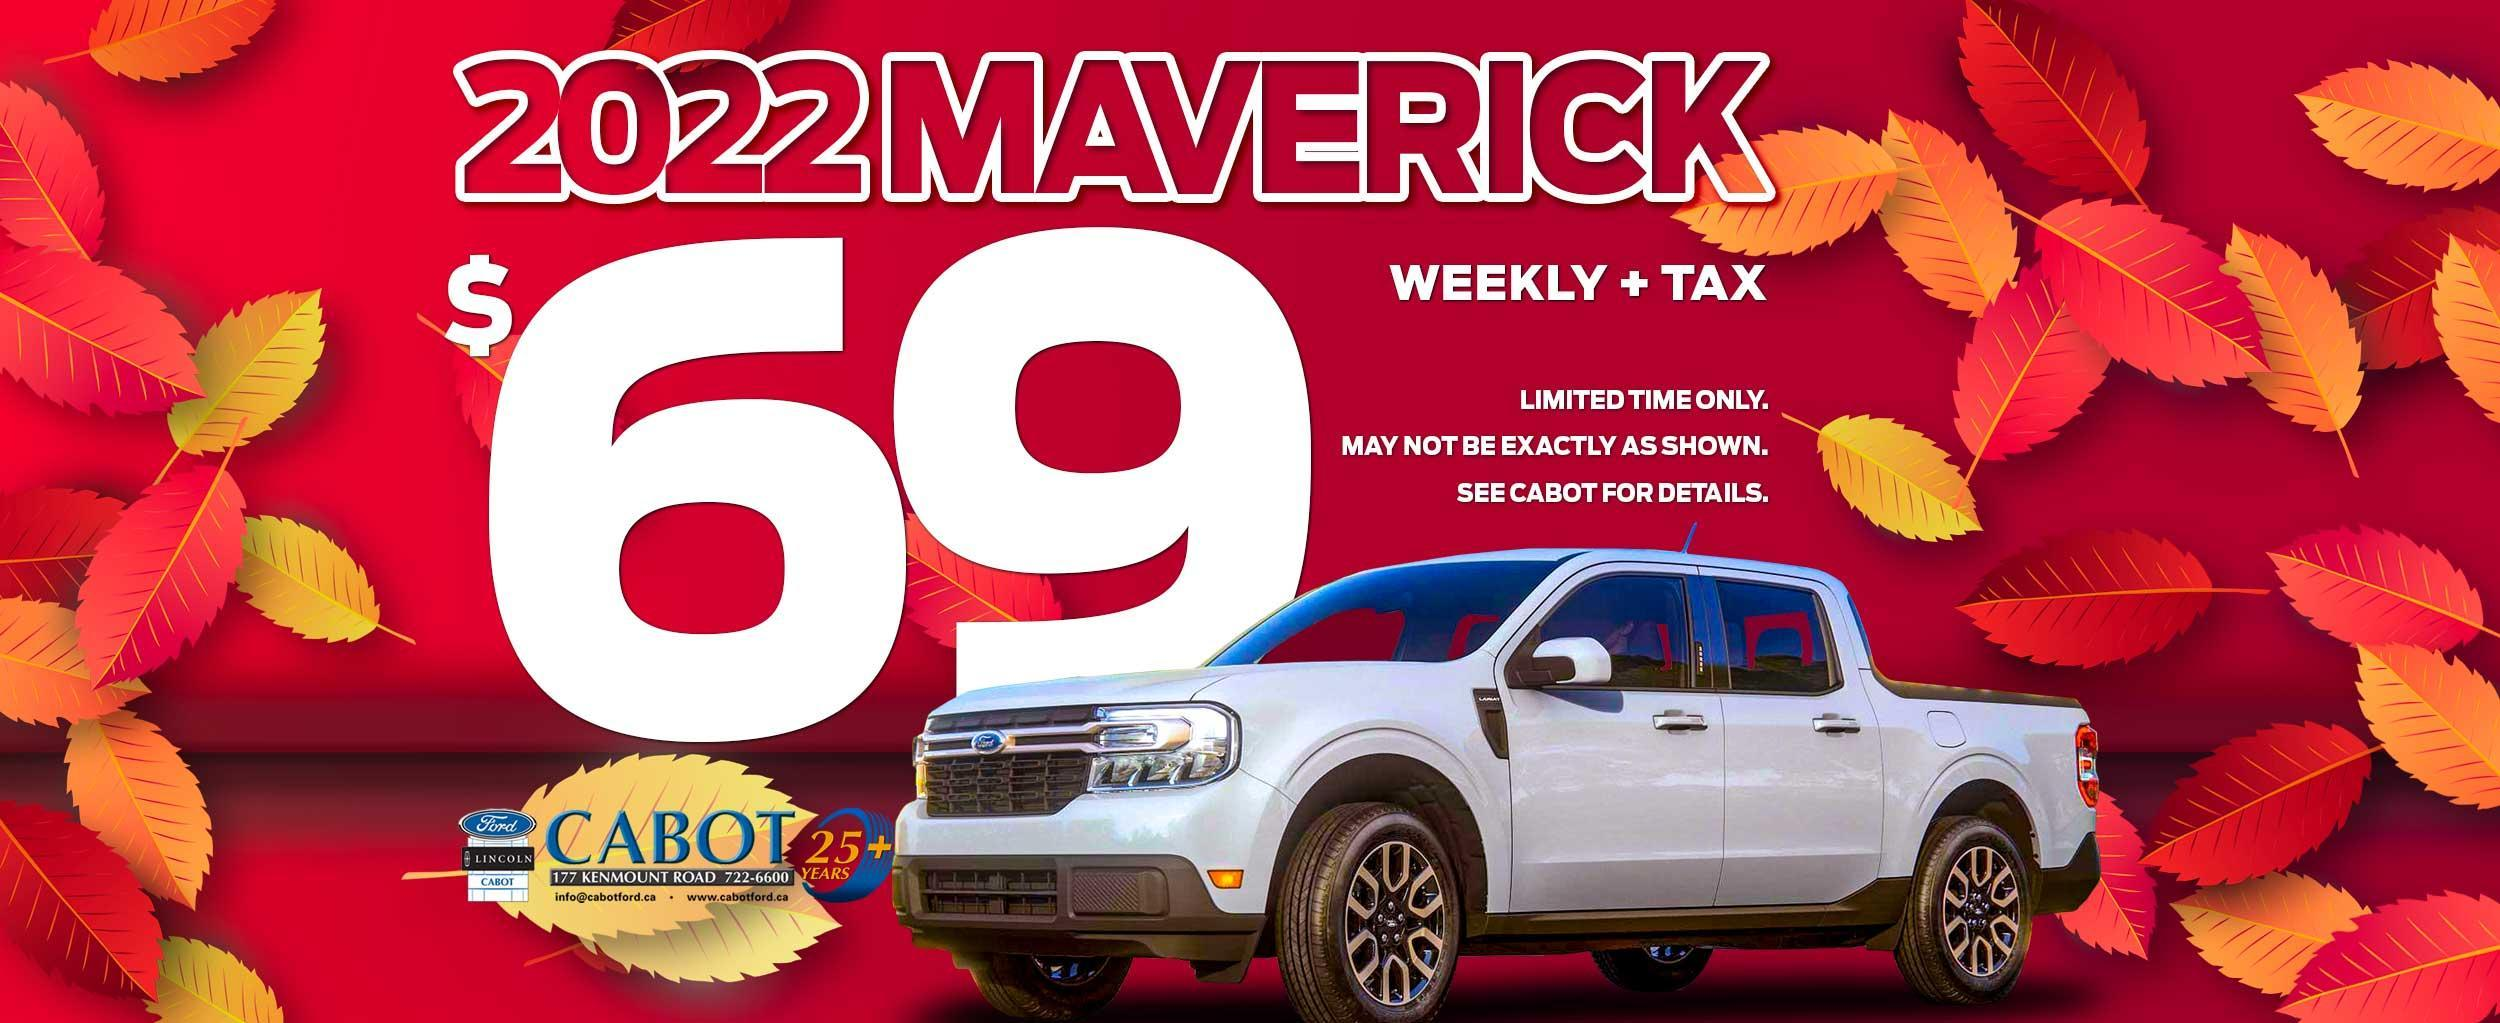 Get the 2022 Ford Maverick for just $69 weekly + tax!